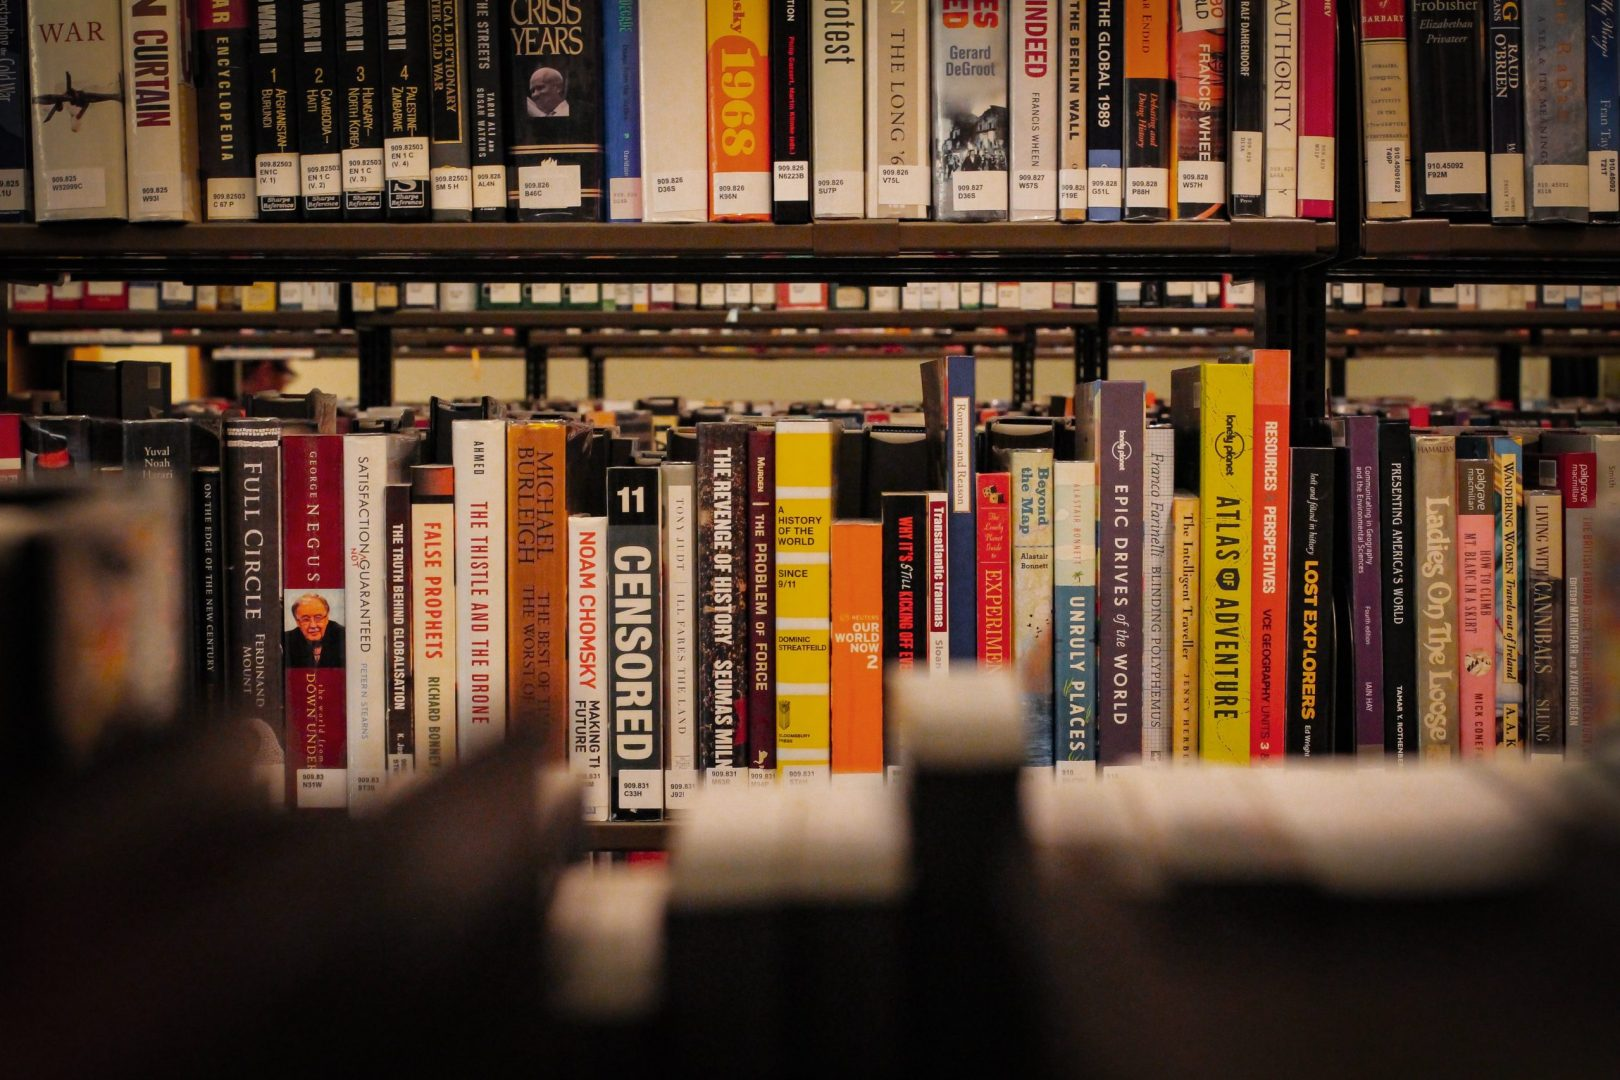 How to Sell Books Online: 3 Things to Do Before Opening an E-Bookstore